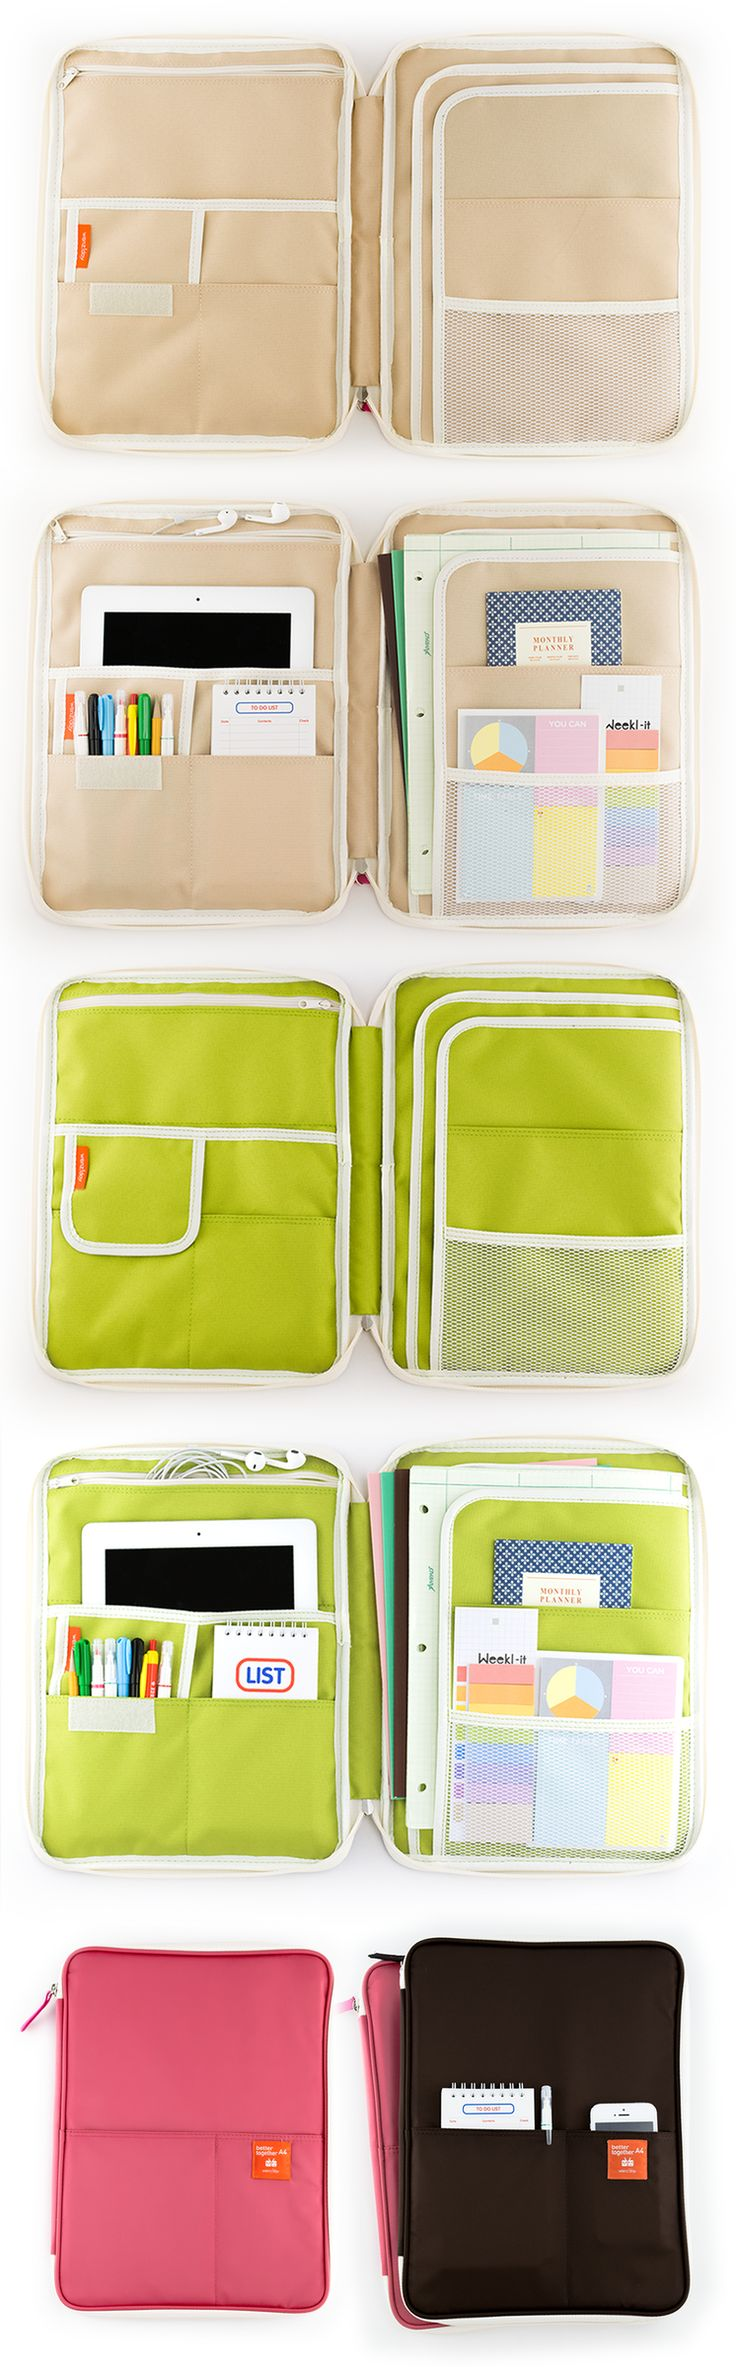 Love organization? This is the pouch for you! The Better Together Note Pouch v2 has 10+ pockets for everything you can imagine. Pockets with zippers, velcro, and mesh will keep all your belongings safe & secure. This amazing multifunctional pouch will hold anything including your pens, folders, A4 & letter sized papers, iPad, planner supplies, phone, sticky notes, and even a 13 inch Macbook Pro! Up your organization game with this super pouch and life will never be the same again! Check it…